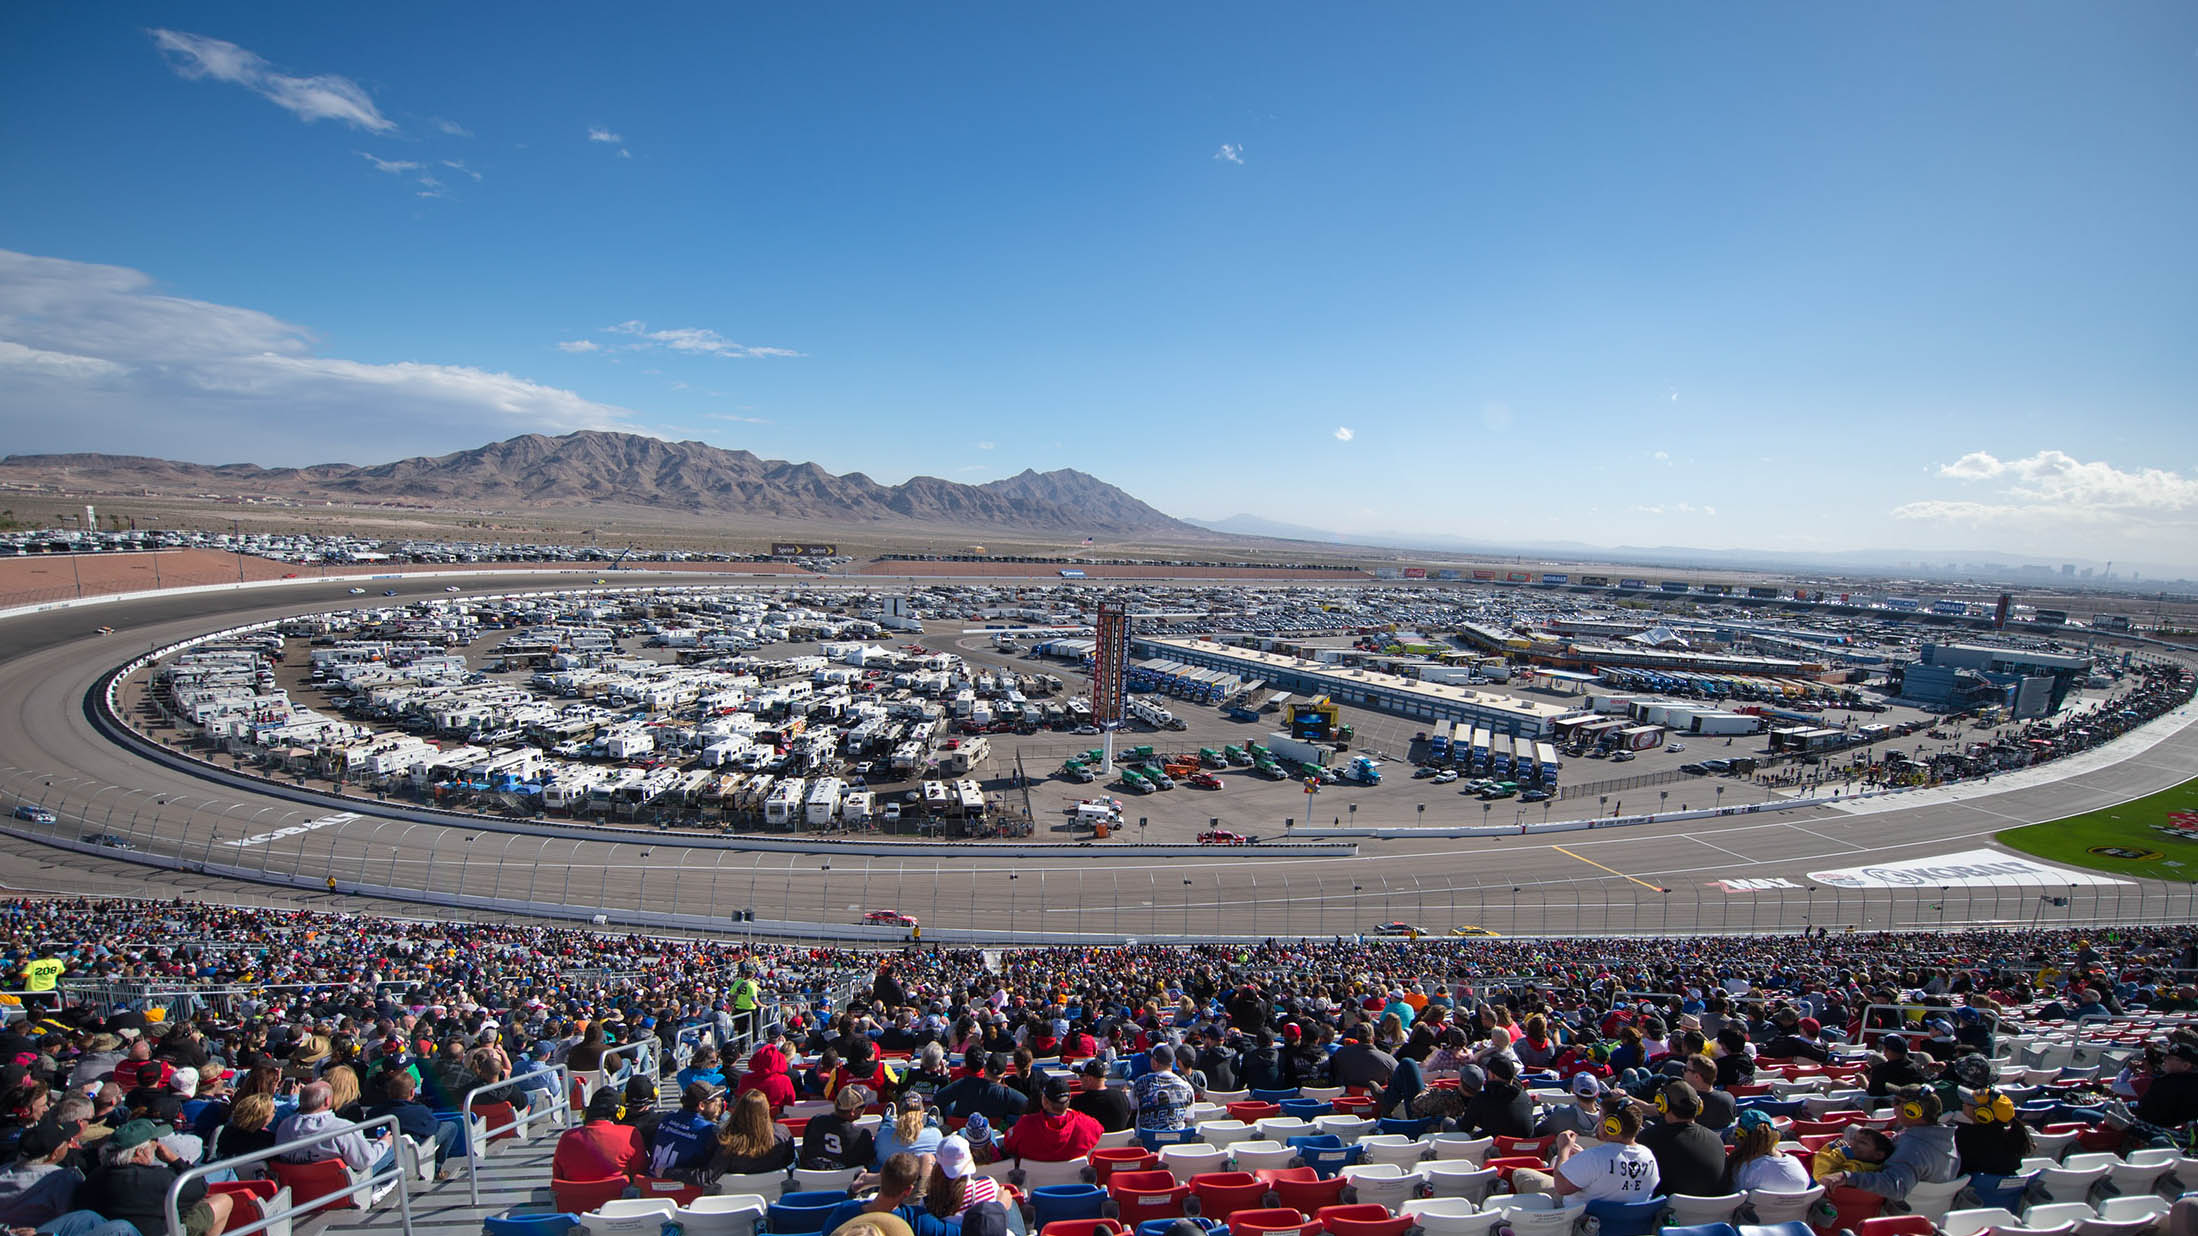 Mar 6, 2016; Las Vegas, NV, USA; Fans look on during the Kobalt 400 at Las Vegas Motor Speedway. Mandatory Credit: Stephen R. Sylvanie-USA TODAY Sports